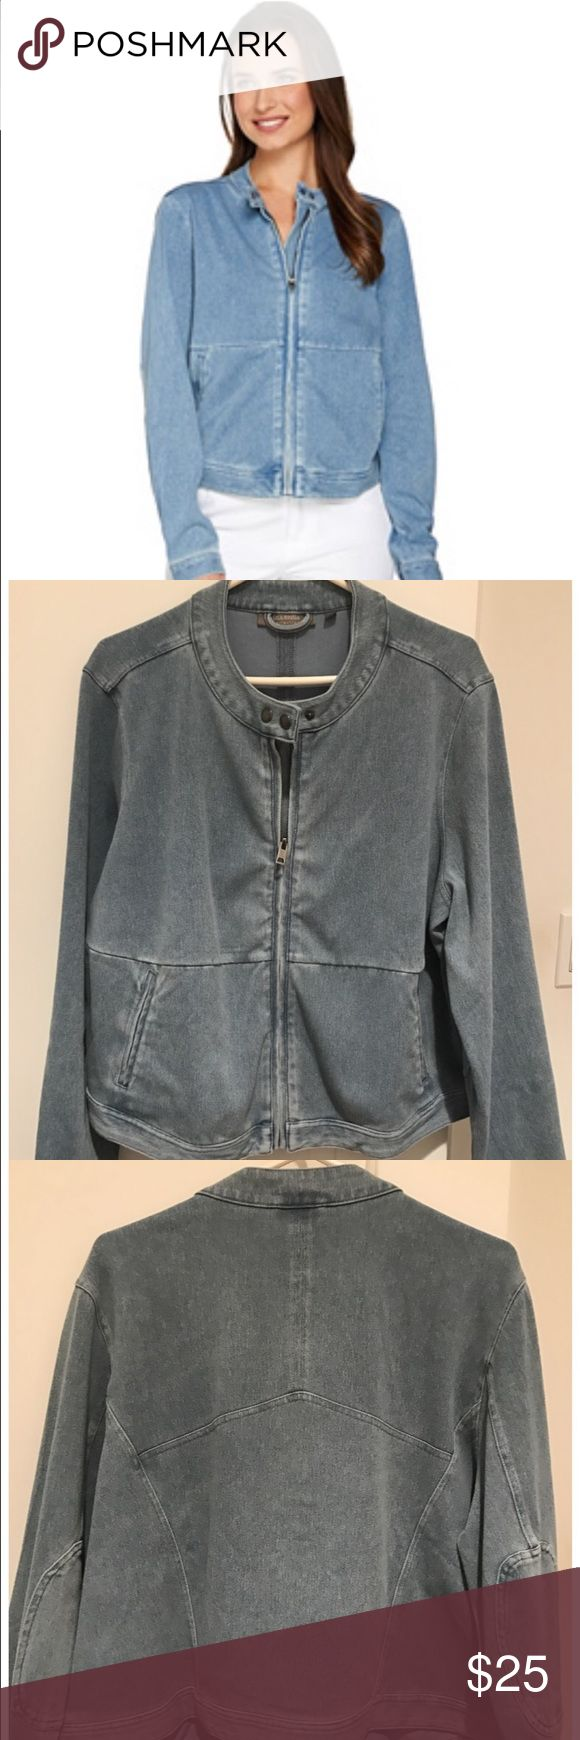 Lisa Rinna Collection Denim Stretch Moto Jacket So flattering on!  Very soft with plenty of stretch. New without tags! Lisa Rinna Collection Jackets & Coats